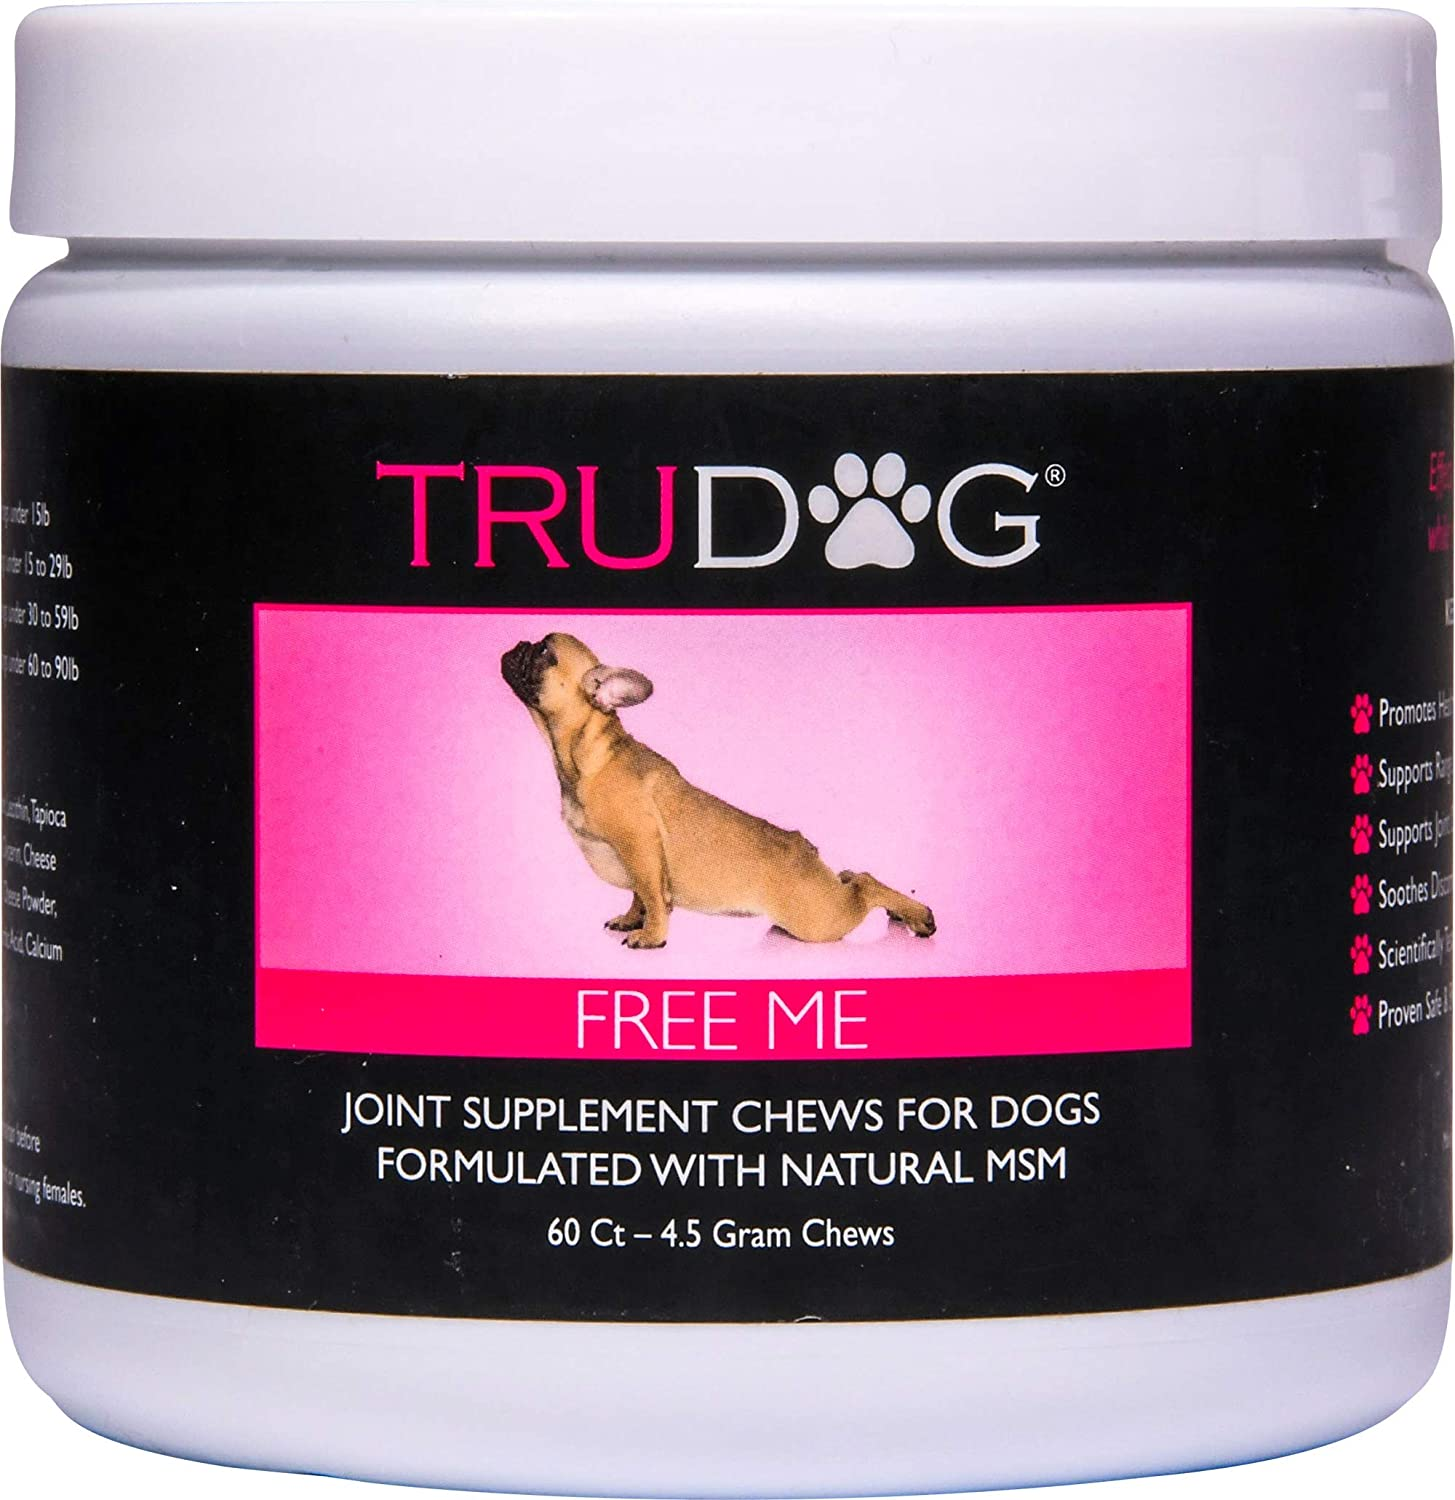 TruDog Free Me Soft Chew Joint Supplement for Dogs - for Natural Source of Vitamin C and Joint Support - 60 Count - Beef Liver Flavor - Suitable for All Dogs - Premium Ingredients, Made in The USA